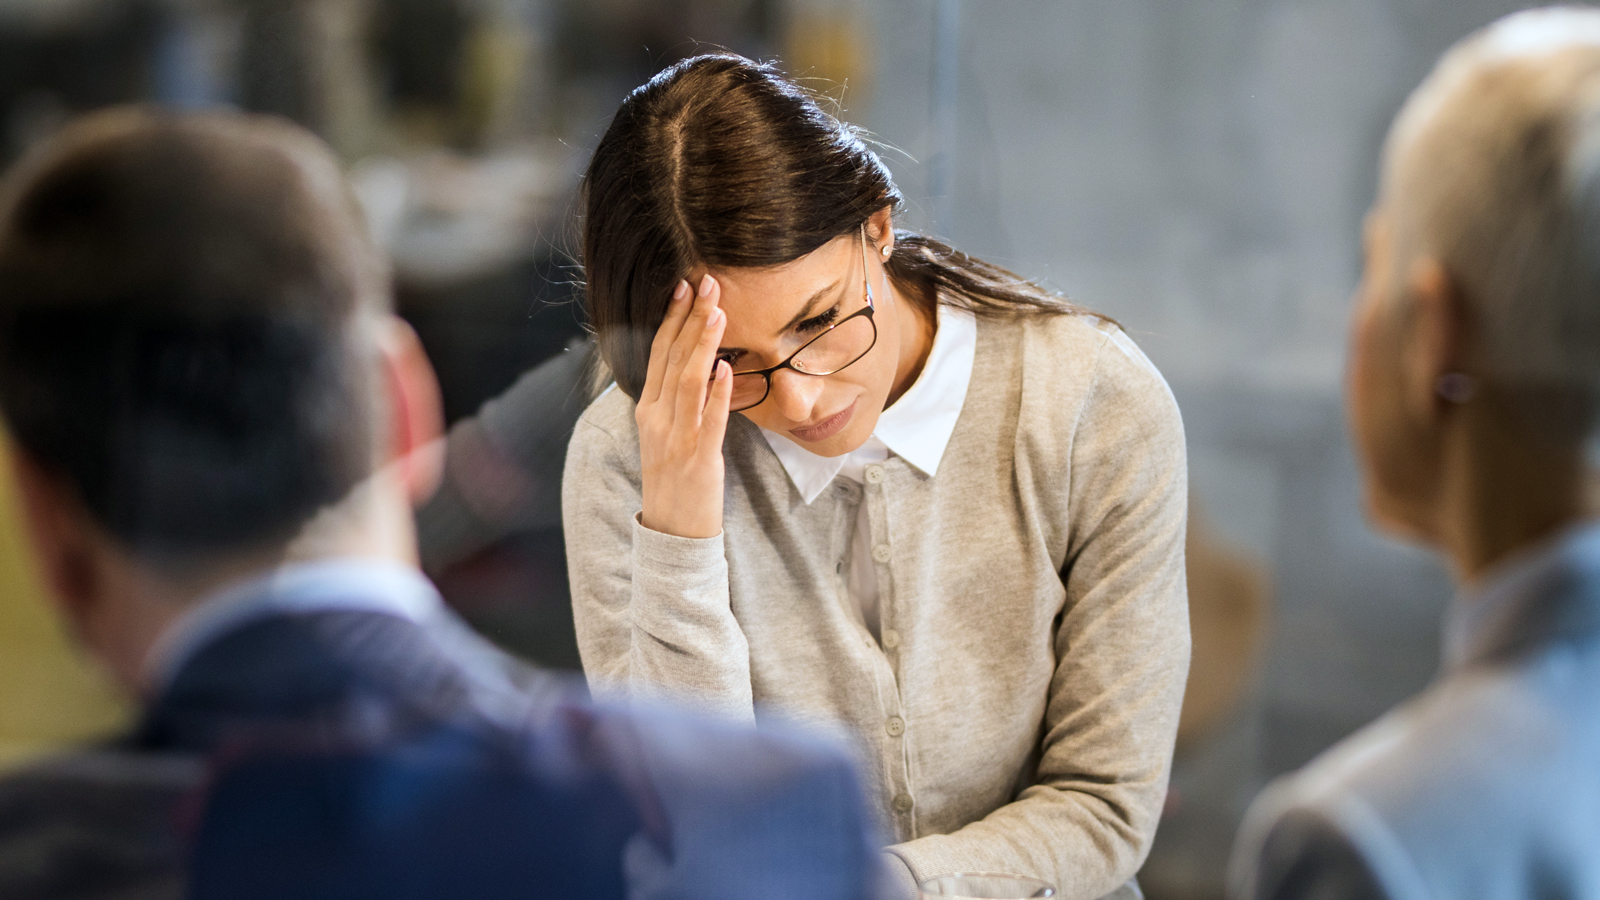 How to recover when you fumble an interview